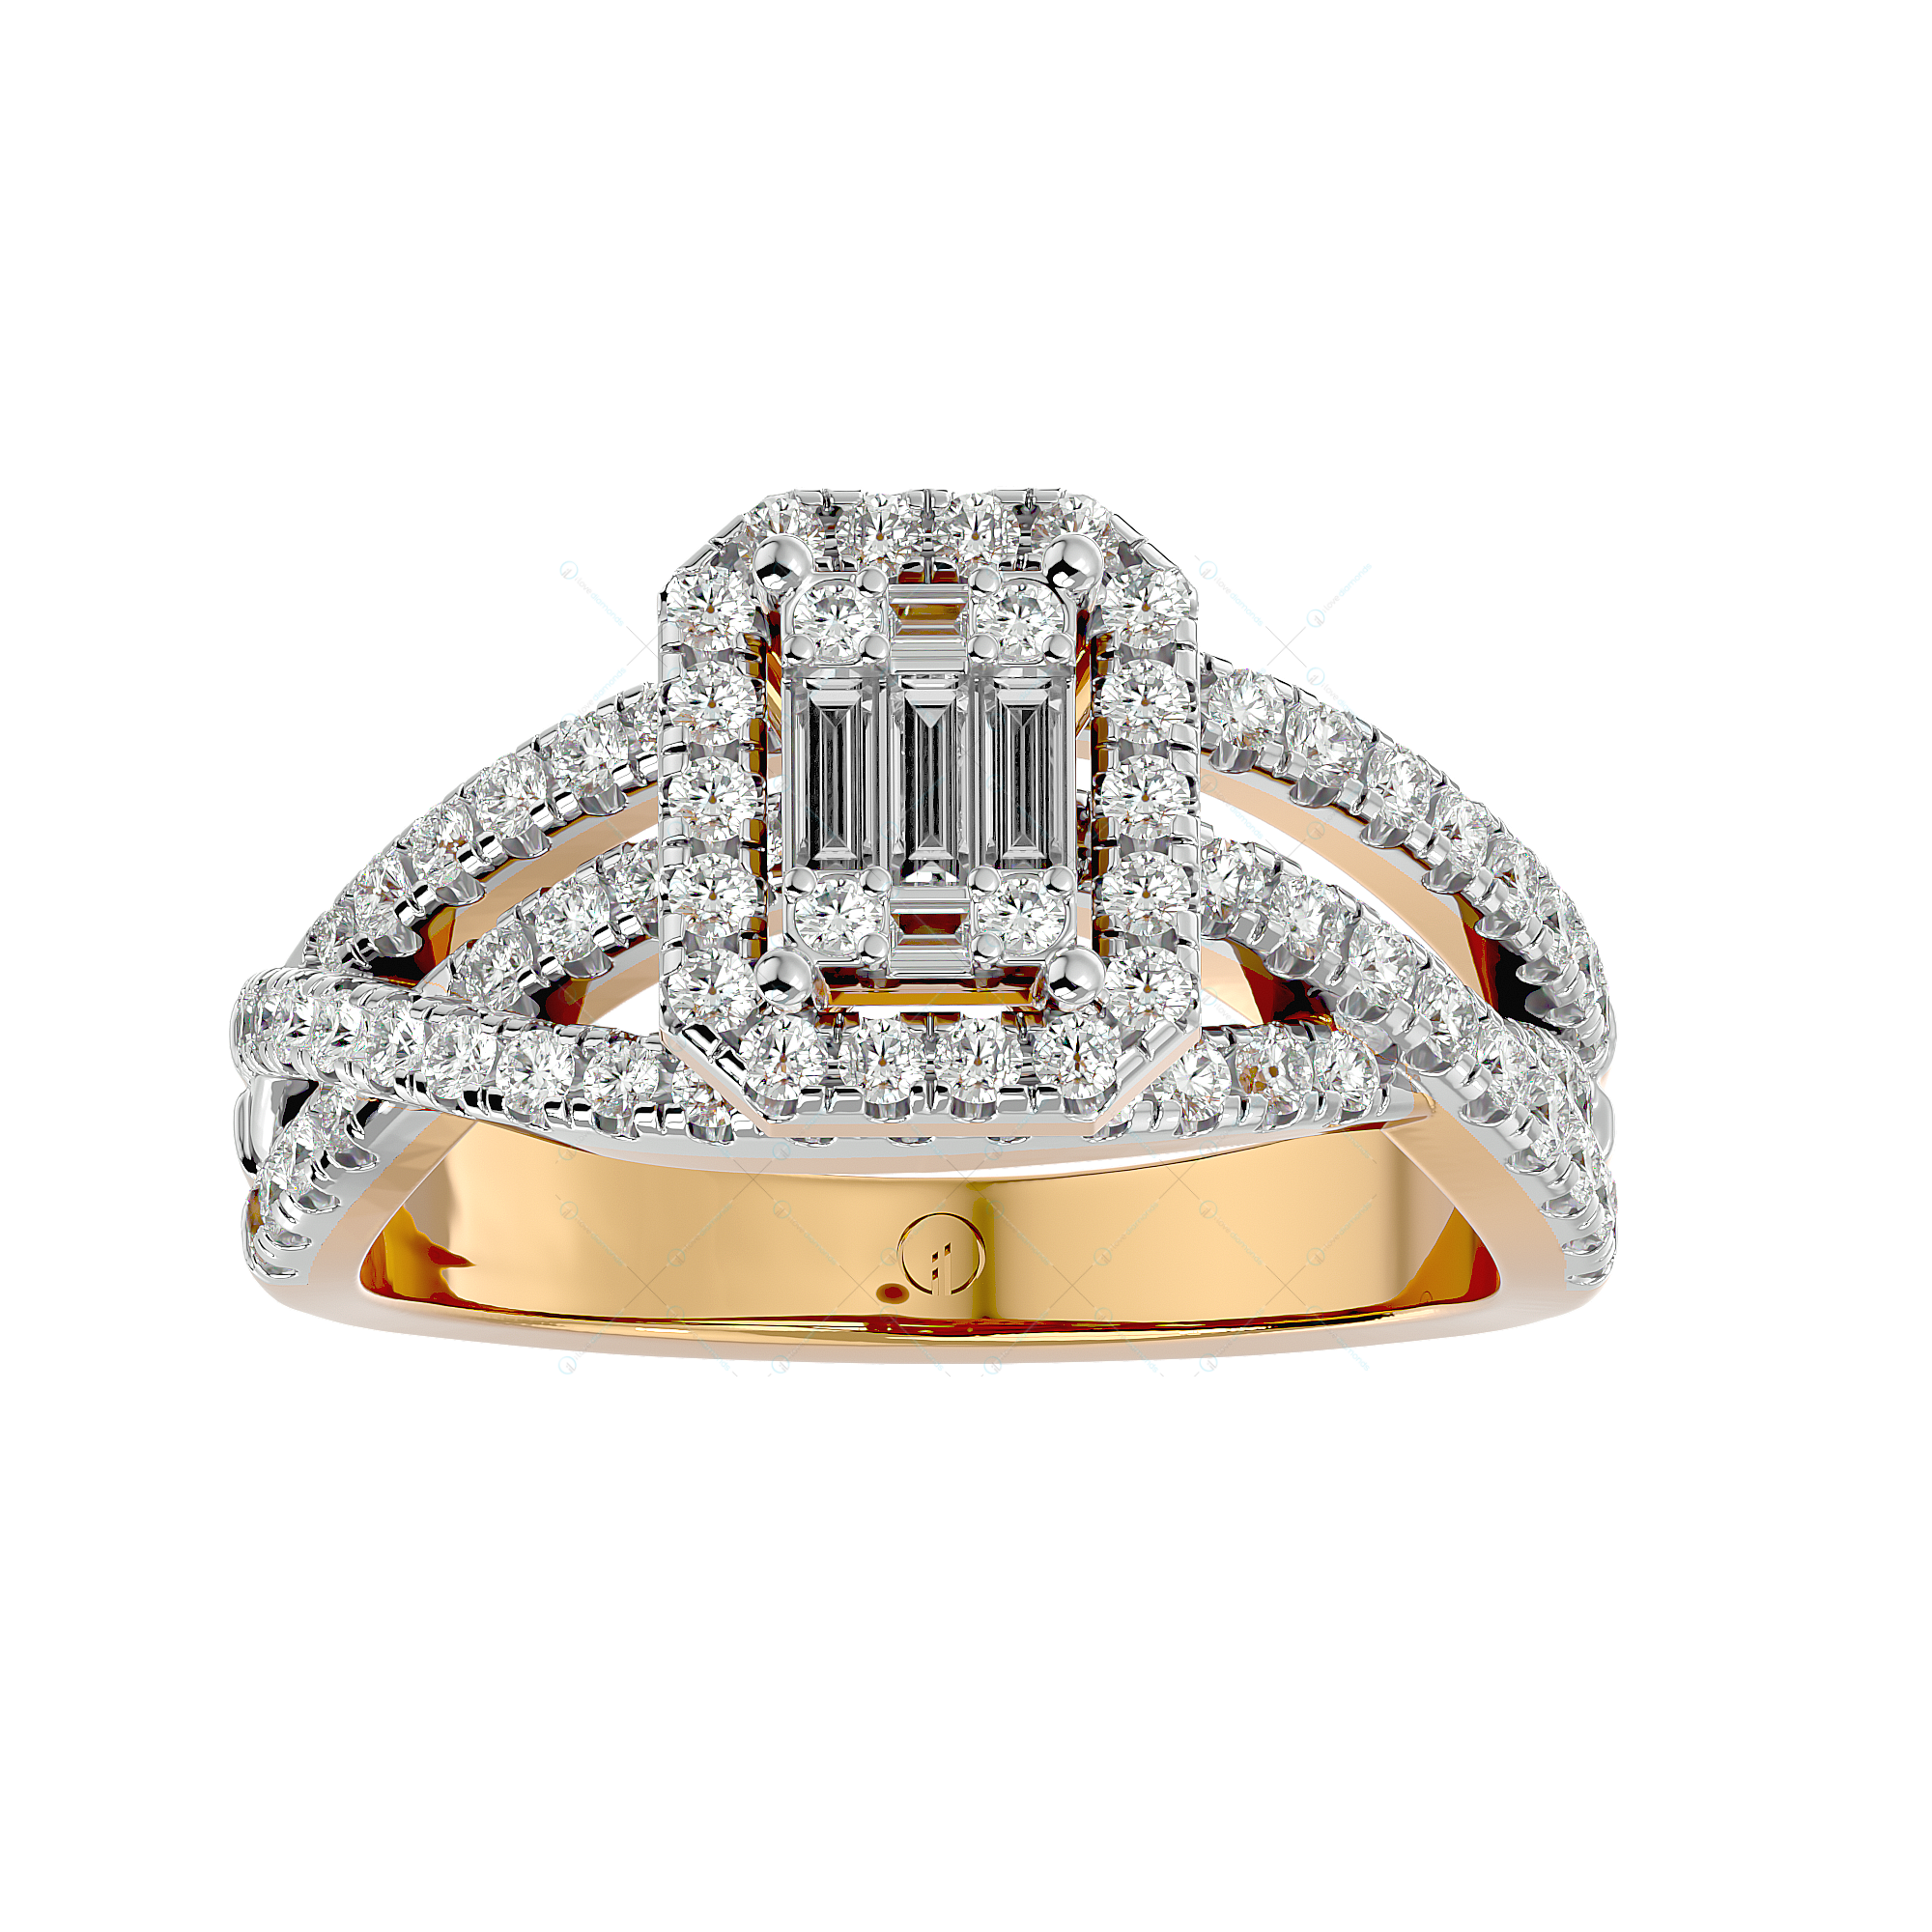 Sassy Chic Solitaire Illusion Diamond Ring in Yellow Gold for Women v2